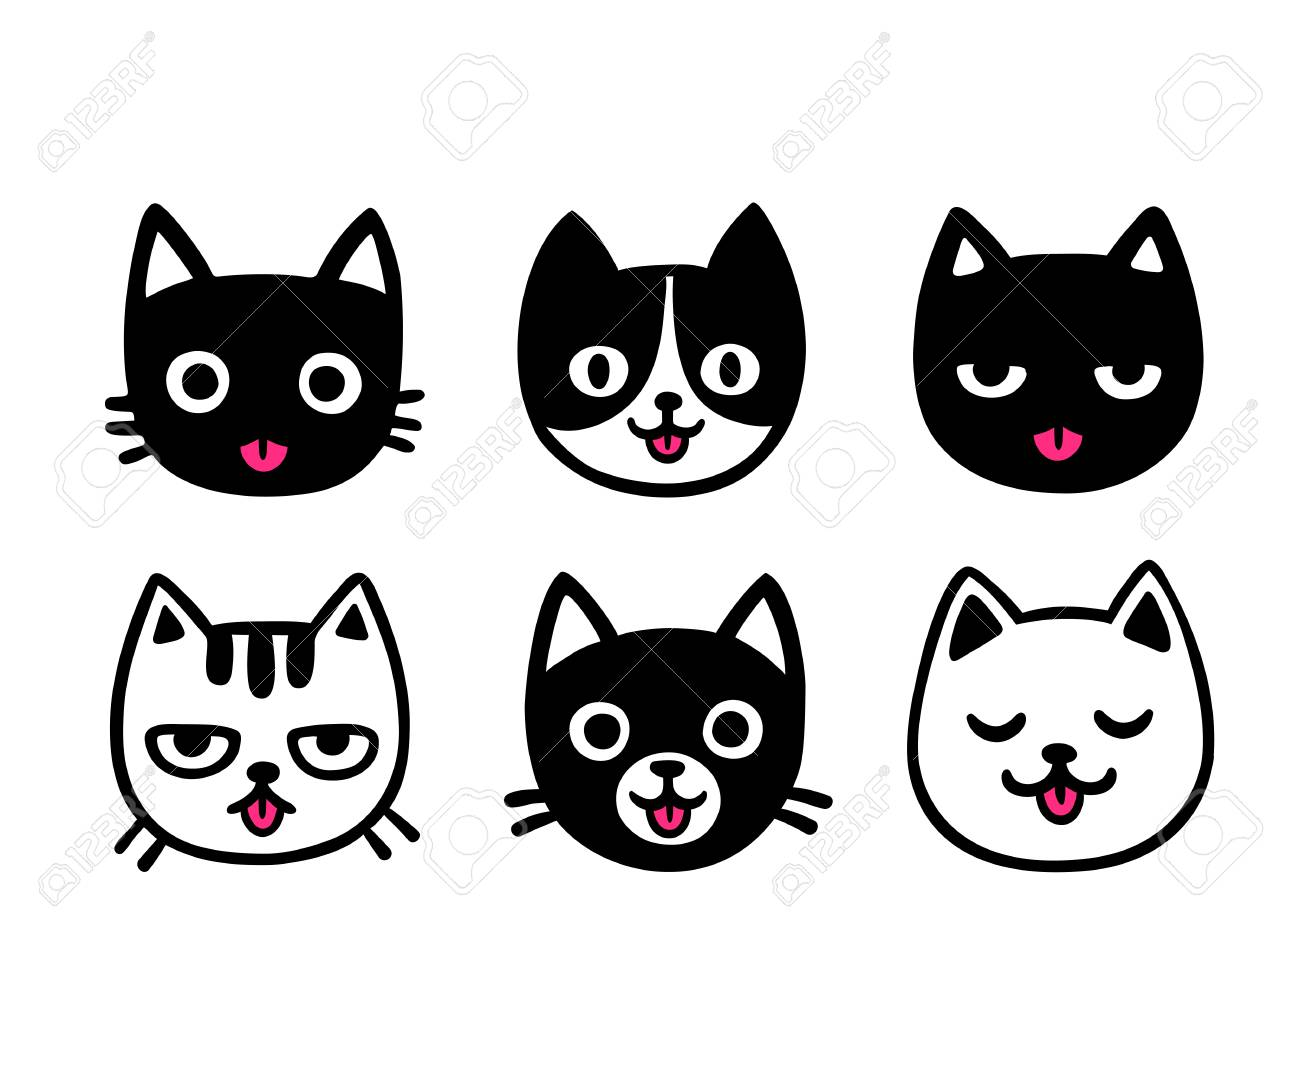 Cute Cartoon Cat Drawing Set Sticking Out Tongue Funny Hand